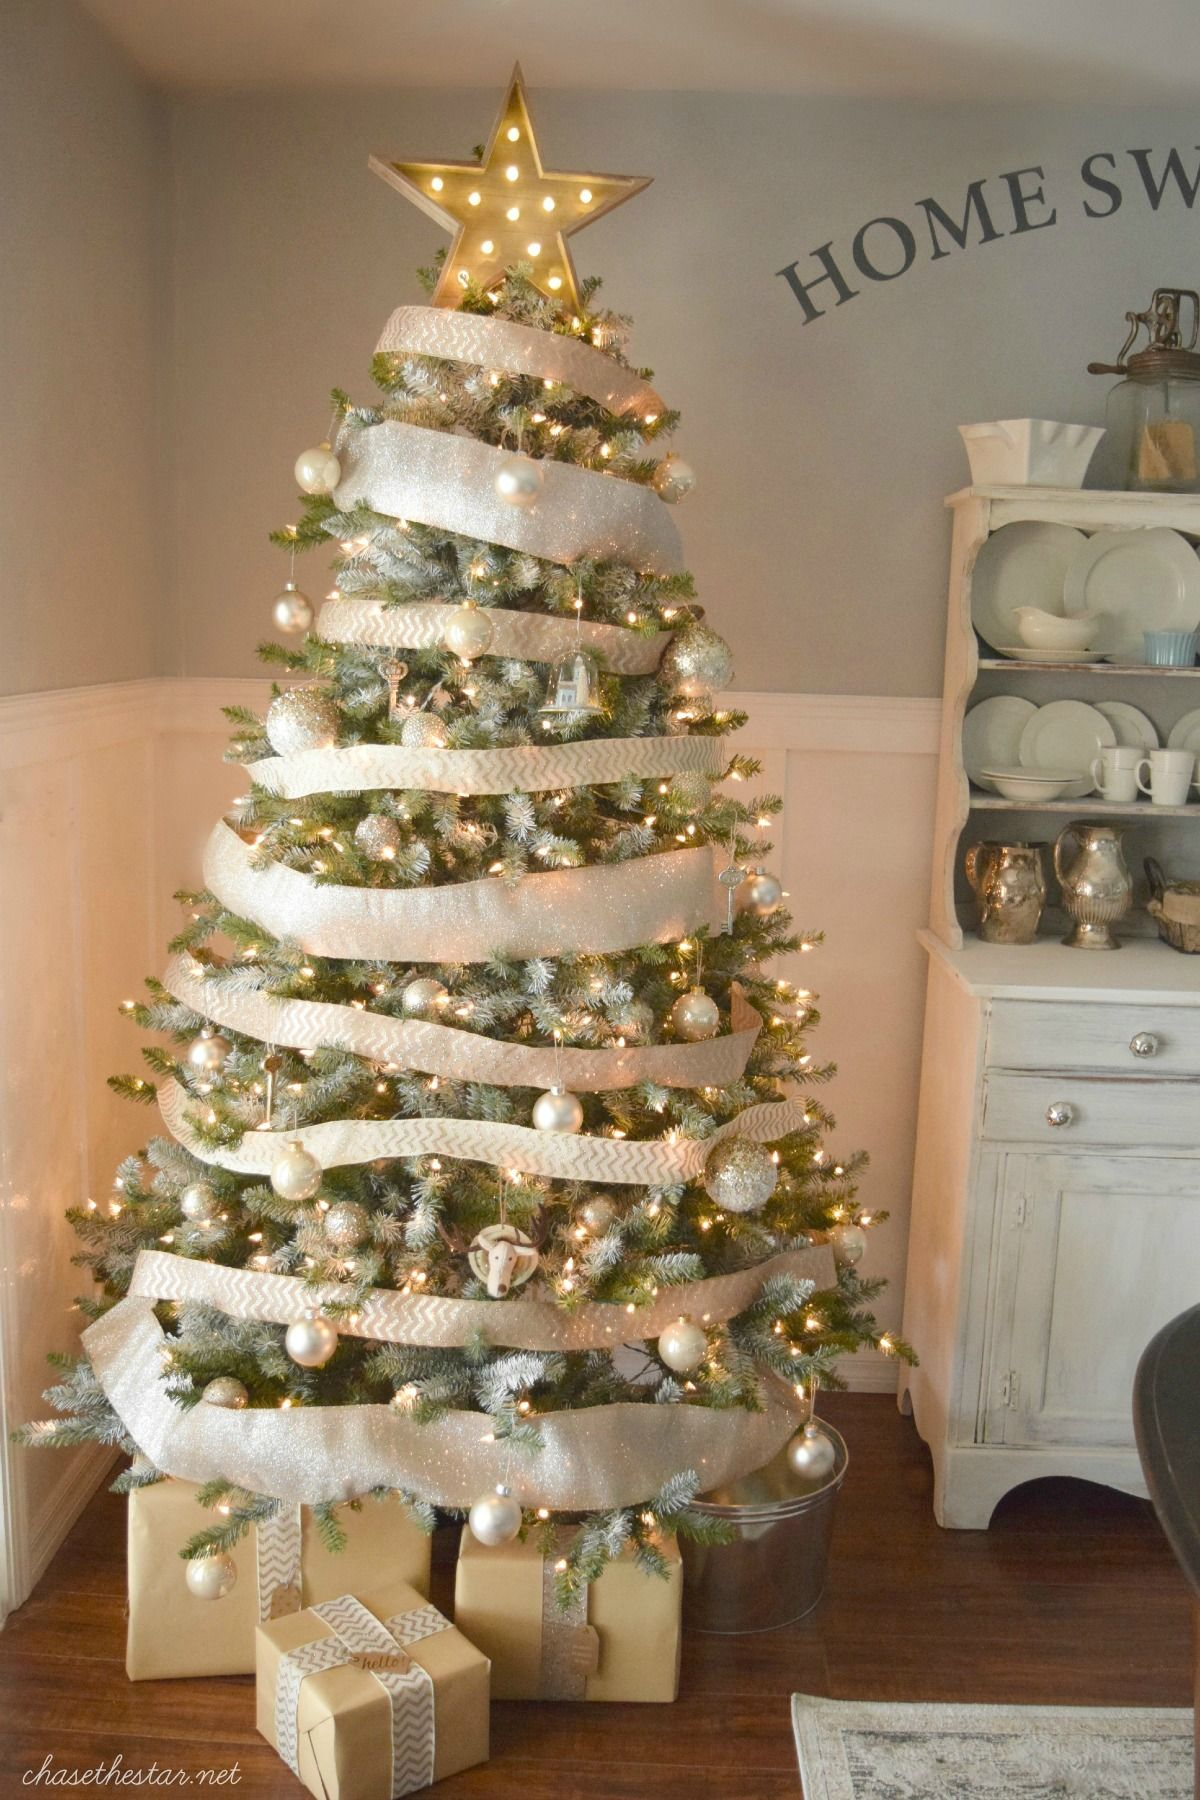 Christmas tree lighting ideas Led Christmas Tree Decorating Ideas Marquee Light Country Living Magazine 76 Best Christmas Tree Decorating Ideas How To Decorate